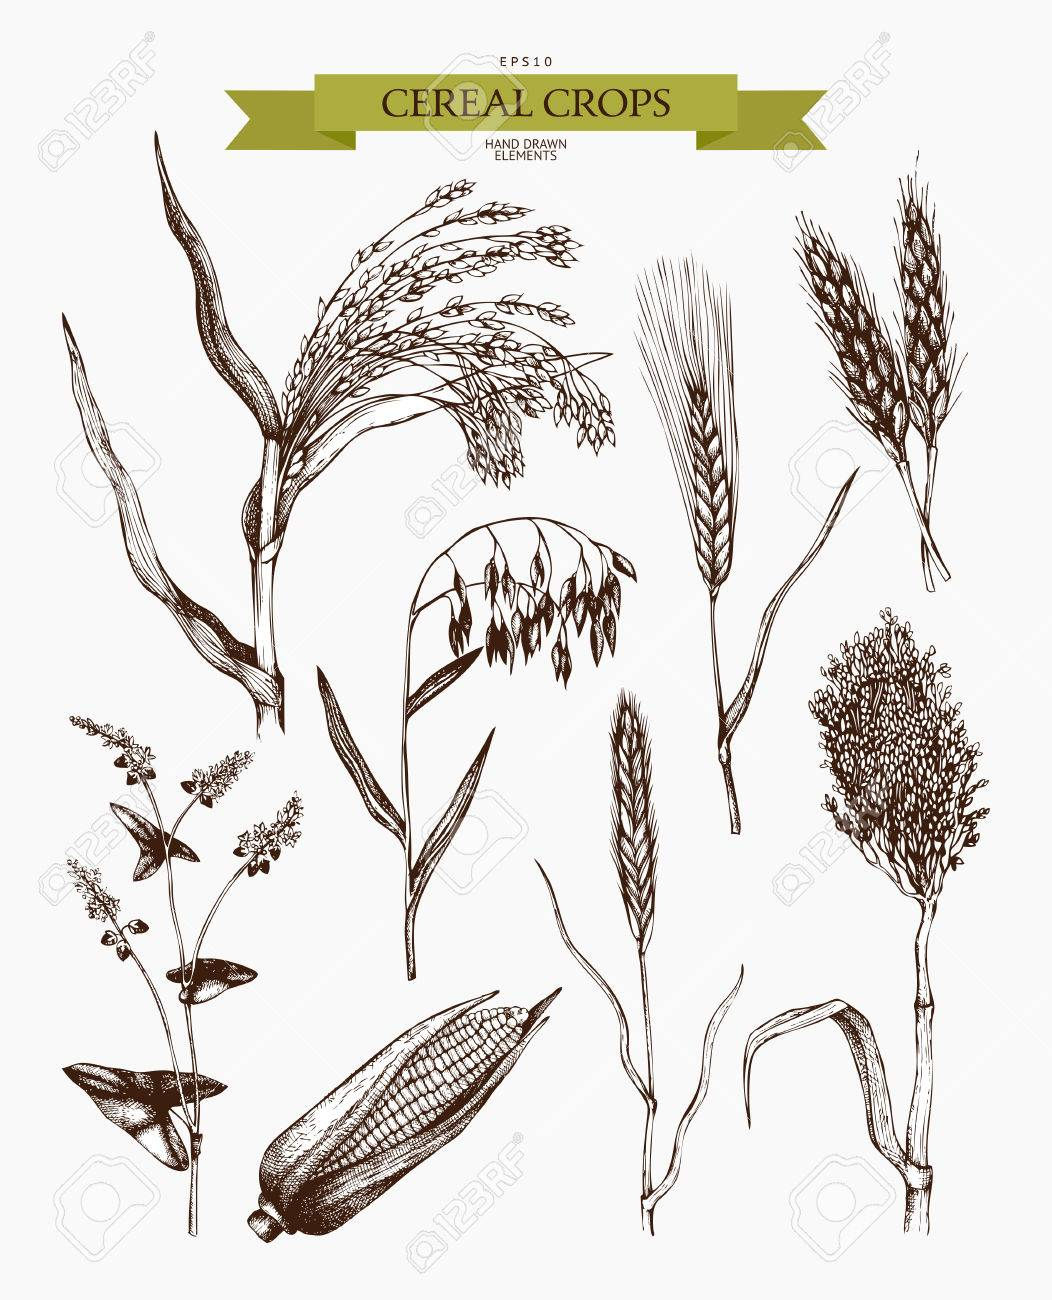 Hand drawn agricultural plants sketches. - 75320445